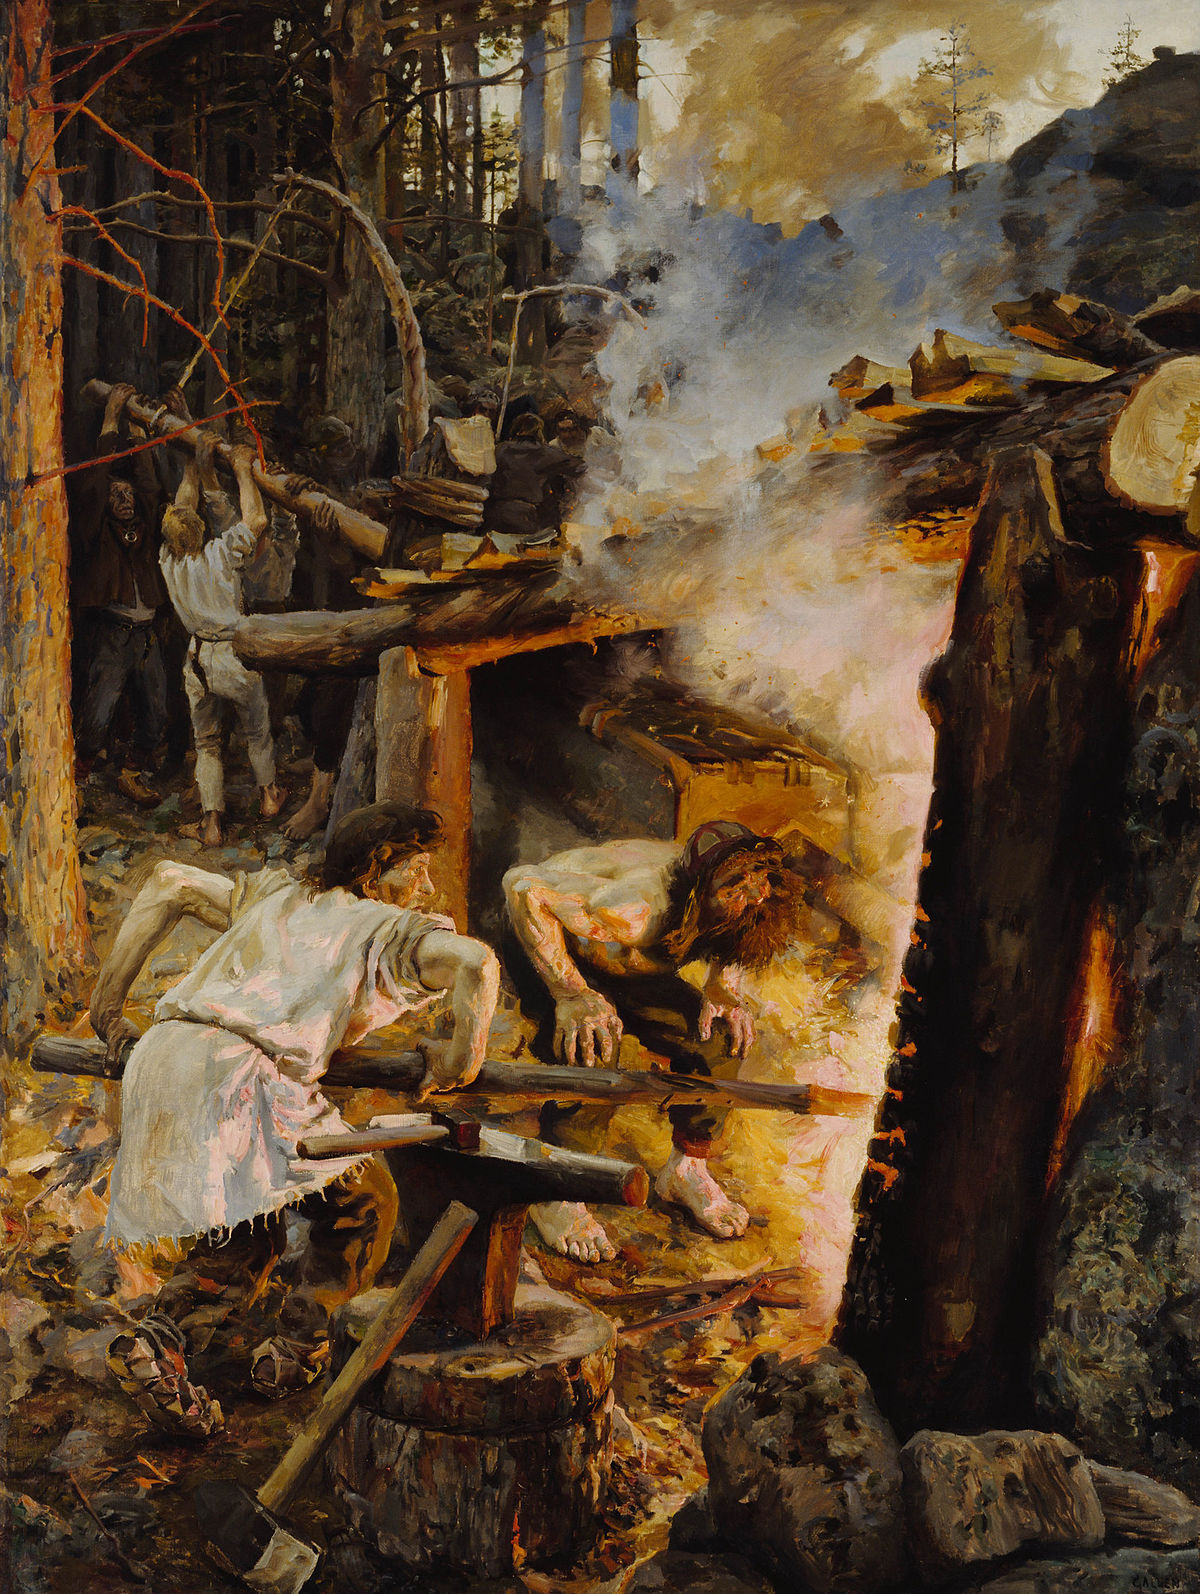 https://upload.wikimedia.org/wikipedia/commons/thumb/a/a8/Gallen_Kallela_The_Forging_of_the_Sampo.jpg/1200px-Gallen_Kallela_The_Forging_of_the_Sampo.jpg